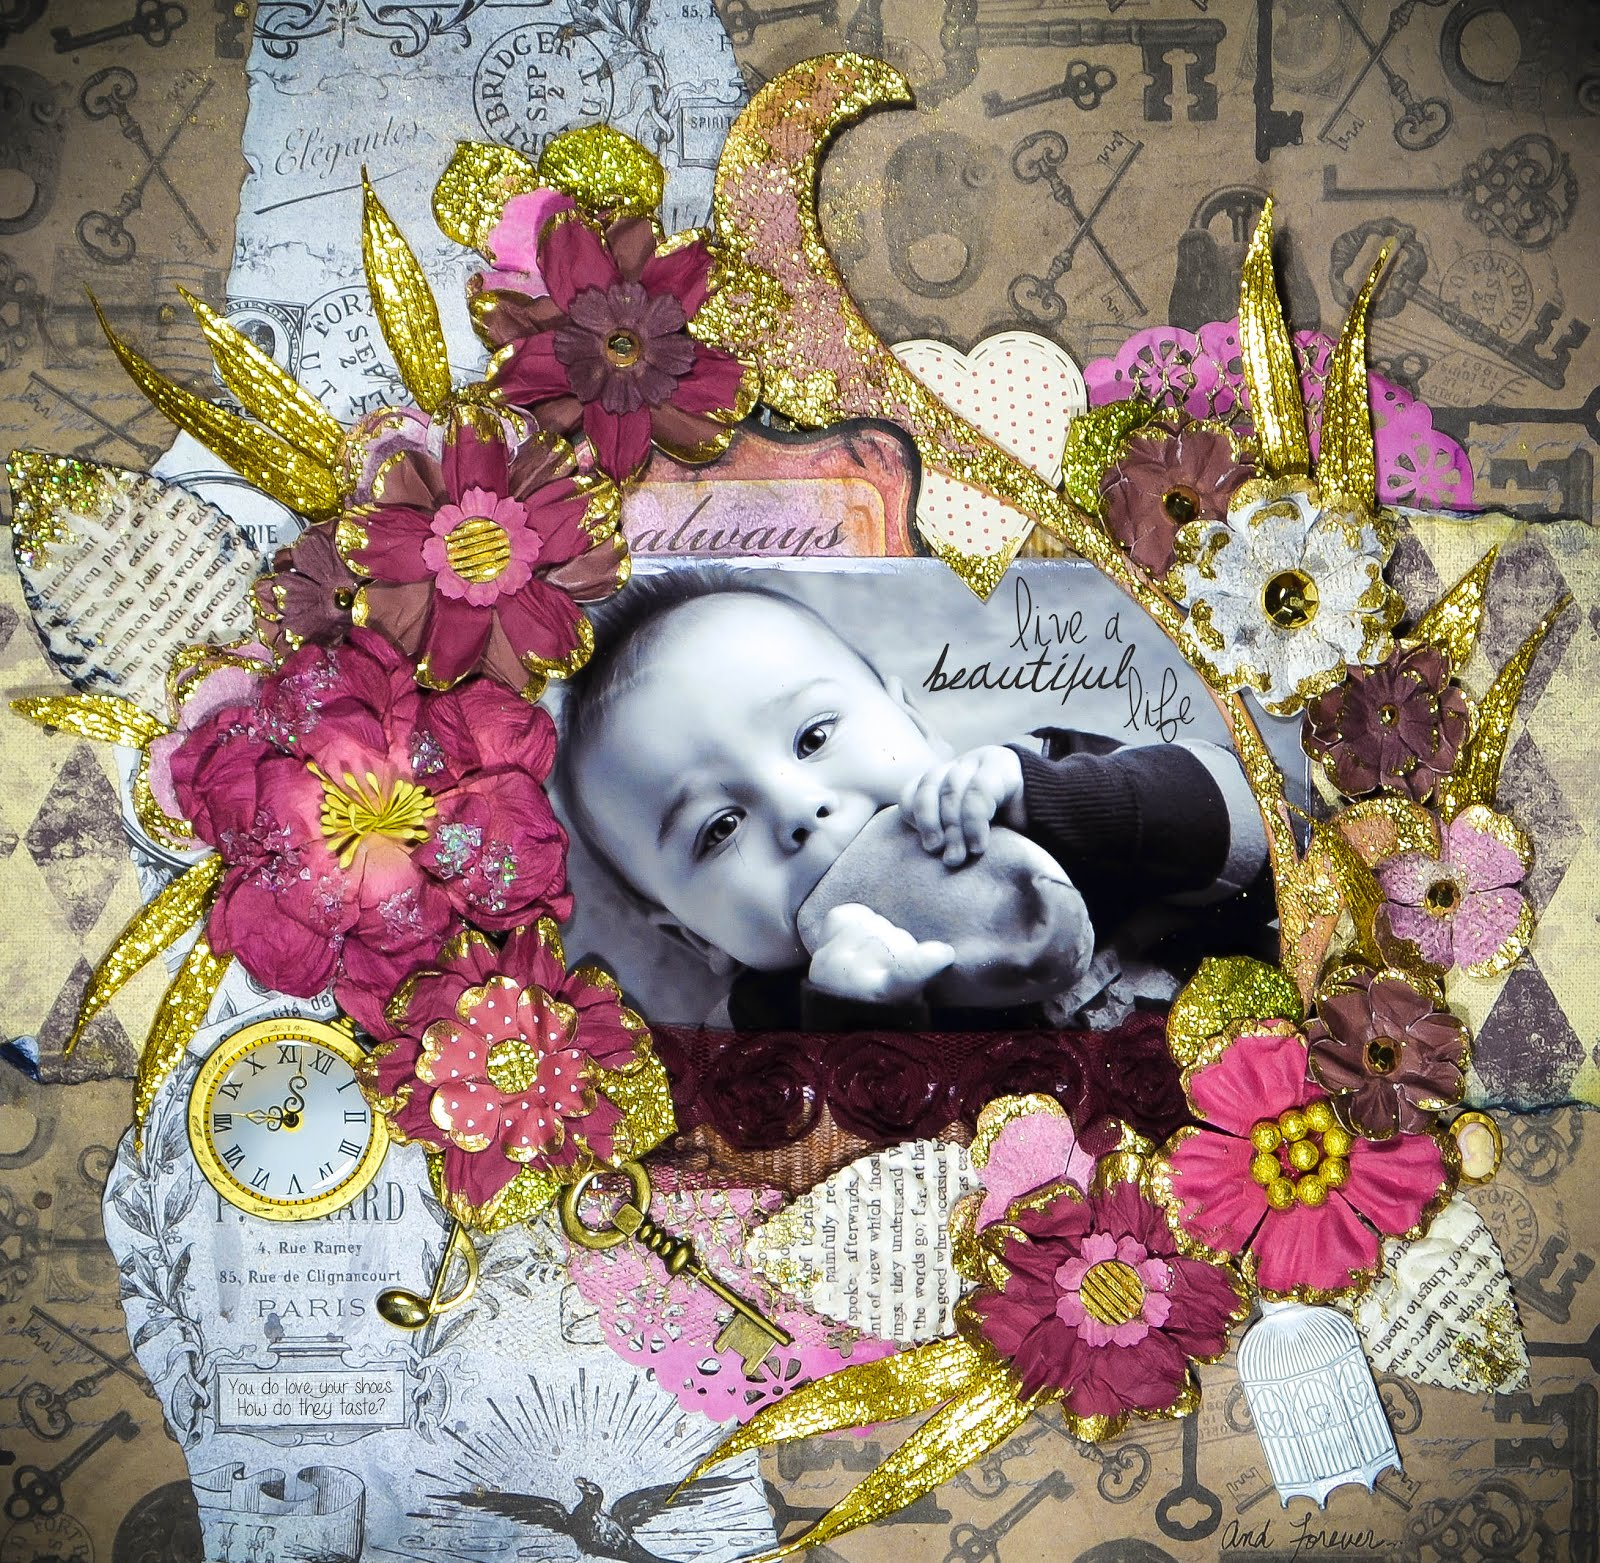 Always live a beautiful life layout dear zae scrapbooking blog always live a beautiful life scrapbook page layout with handmade cloisonne flowers in pink and gold izmirmasajfo